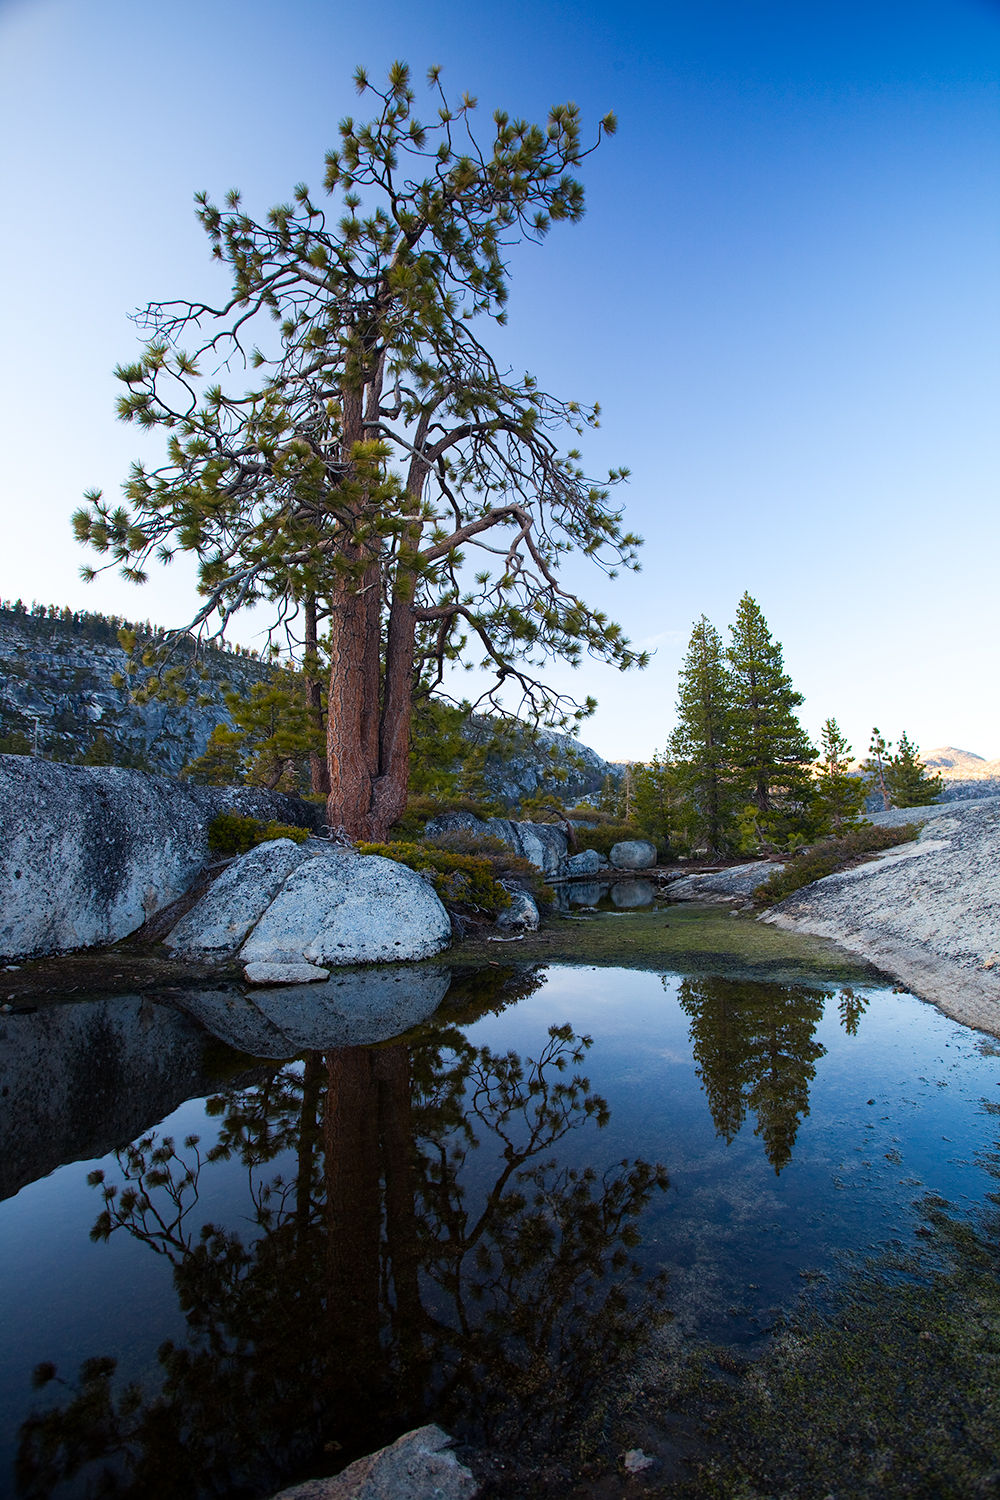 yosemite__reflection_tree_pond_0358.jpg